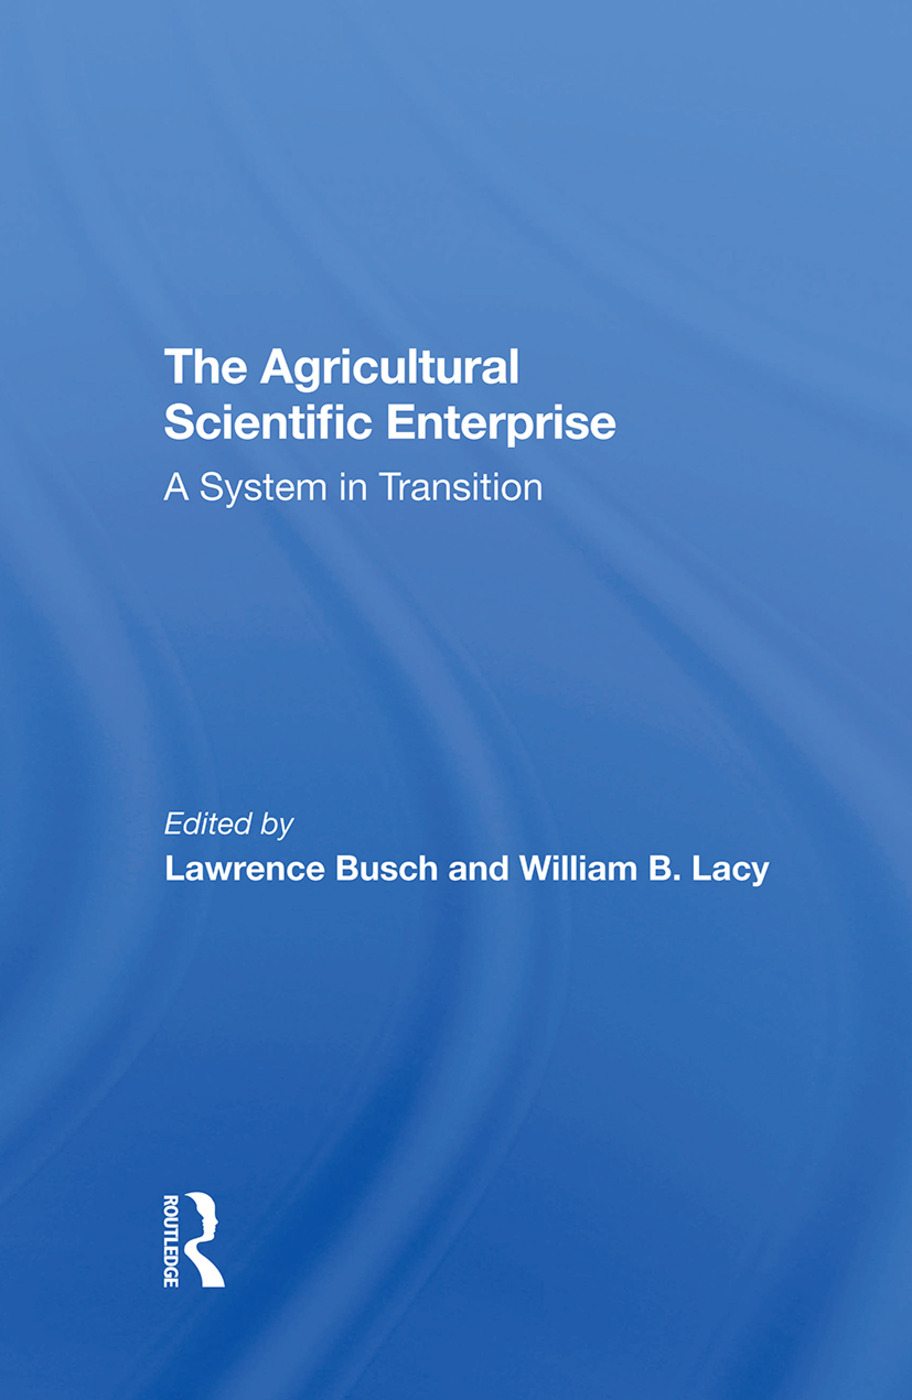 Tradition and Innovation in Agriculture: A Comparison of Public and Private Development of Hybrid Corn